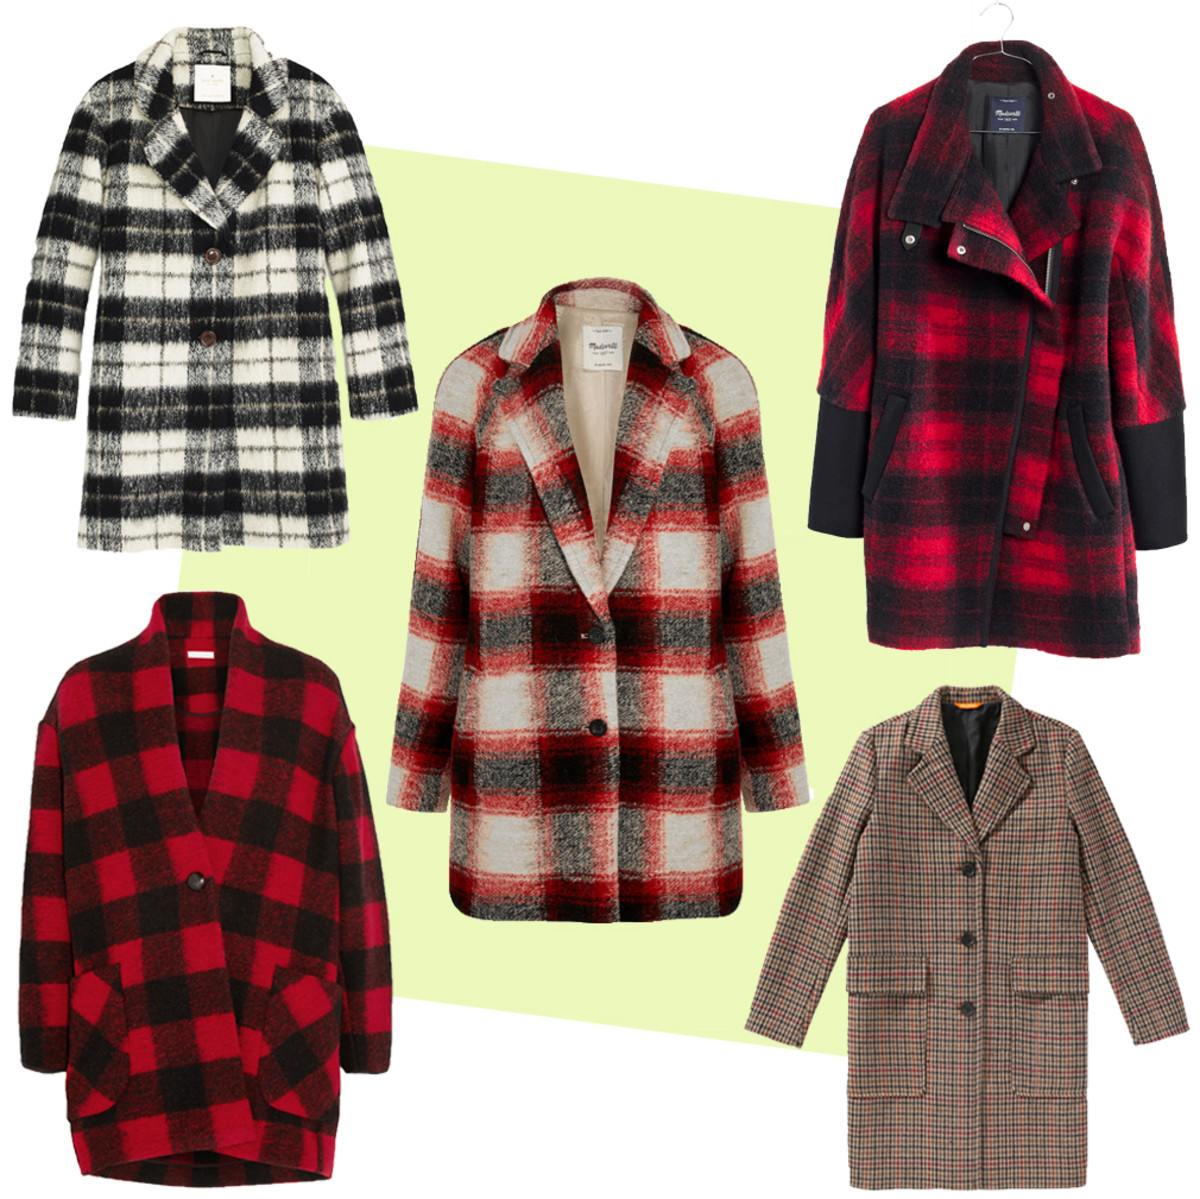 TOP LEFT: Kate Spade woodland check bow coat, $798, available at Kate Spade; CENTER: Madewell plaid wool-blend coat, $280, available at Net-a-Porter; TOP RIGHT: Madewell city grid coat in plaid, $348, available at Madewell; BOTTOM LEFT: Etoile Isabel Marant plaid coat, $530, available at Net-a-Porter; BOTTOM RIGHT: Joe Fresh plaid coat, $149, available at Joe Fresh.